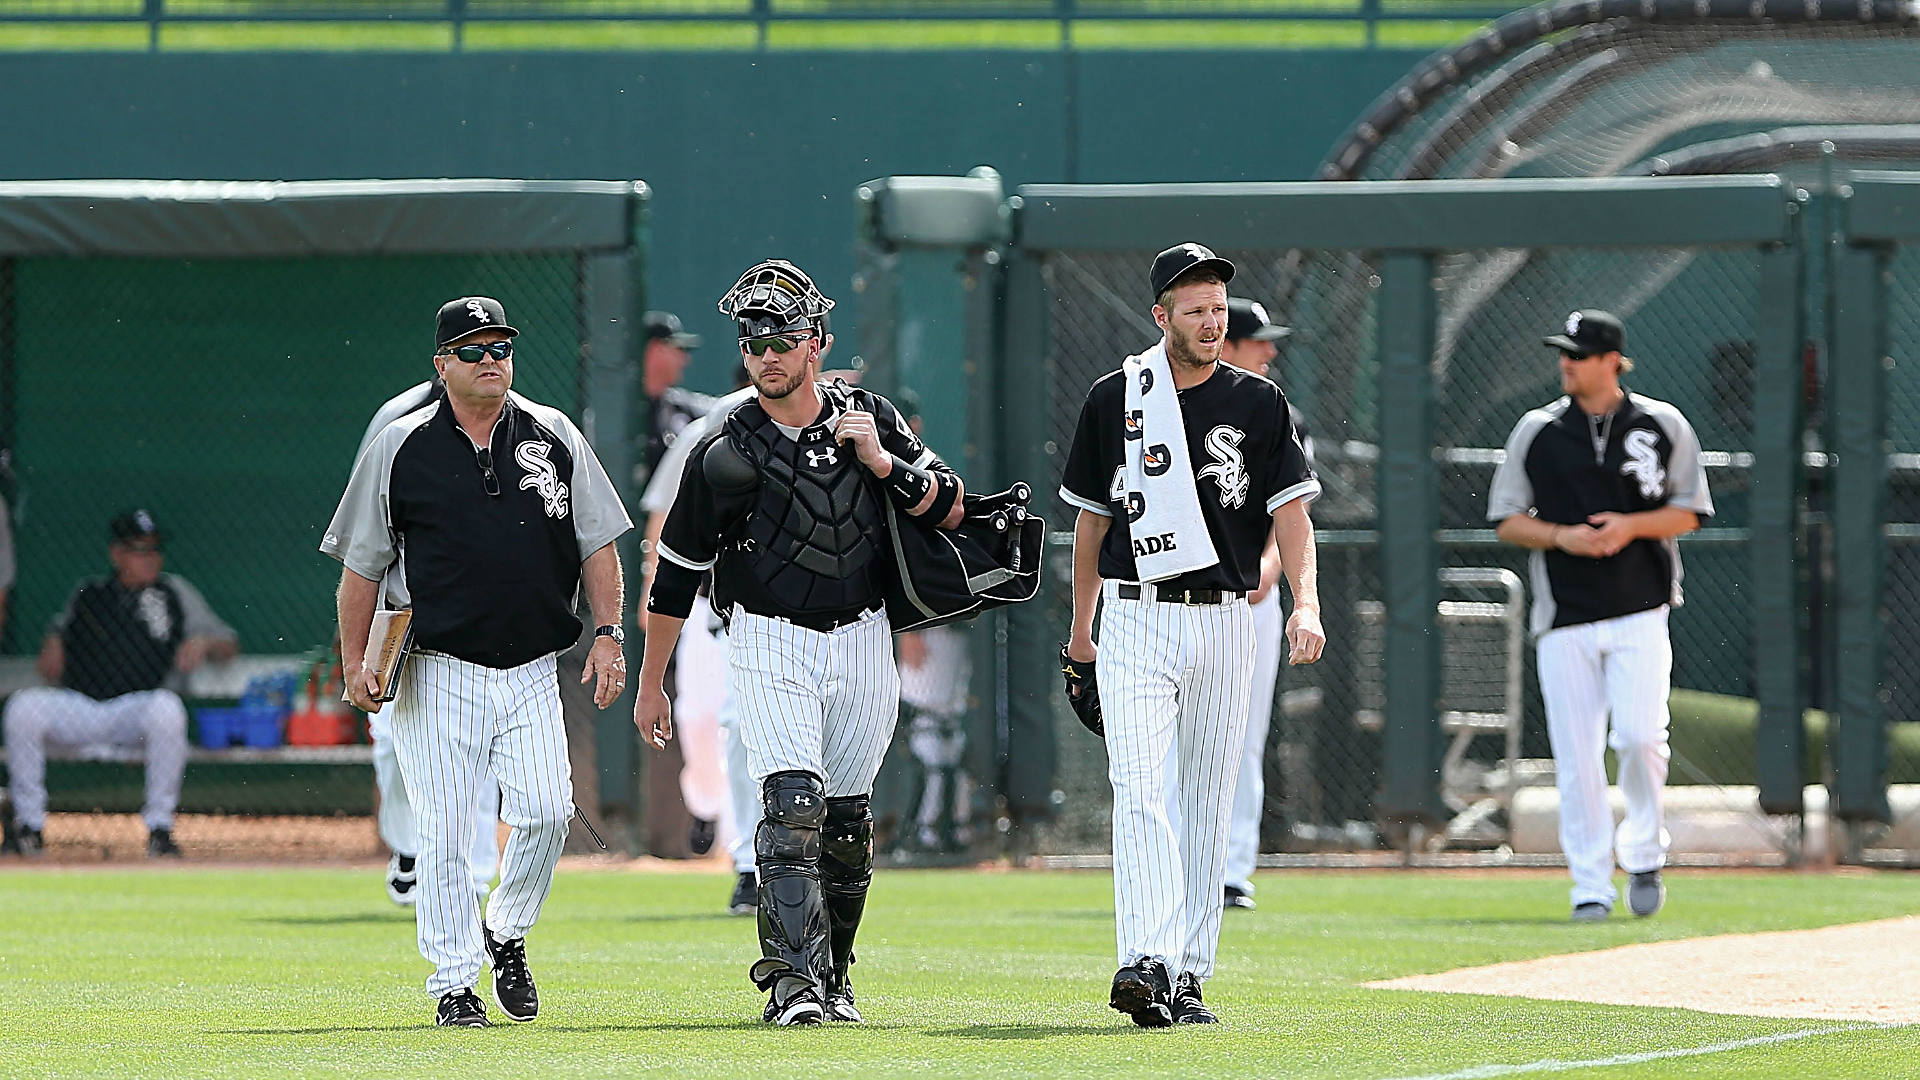 When do pitchers and catchers report? 2015 spring training reporting